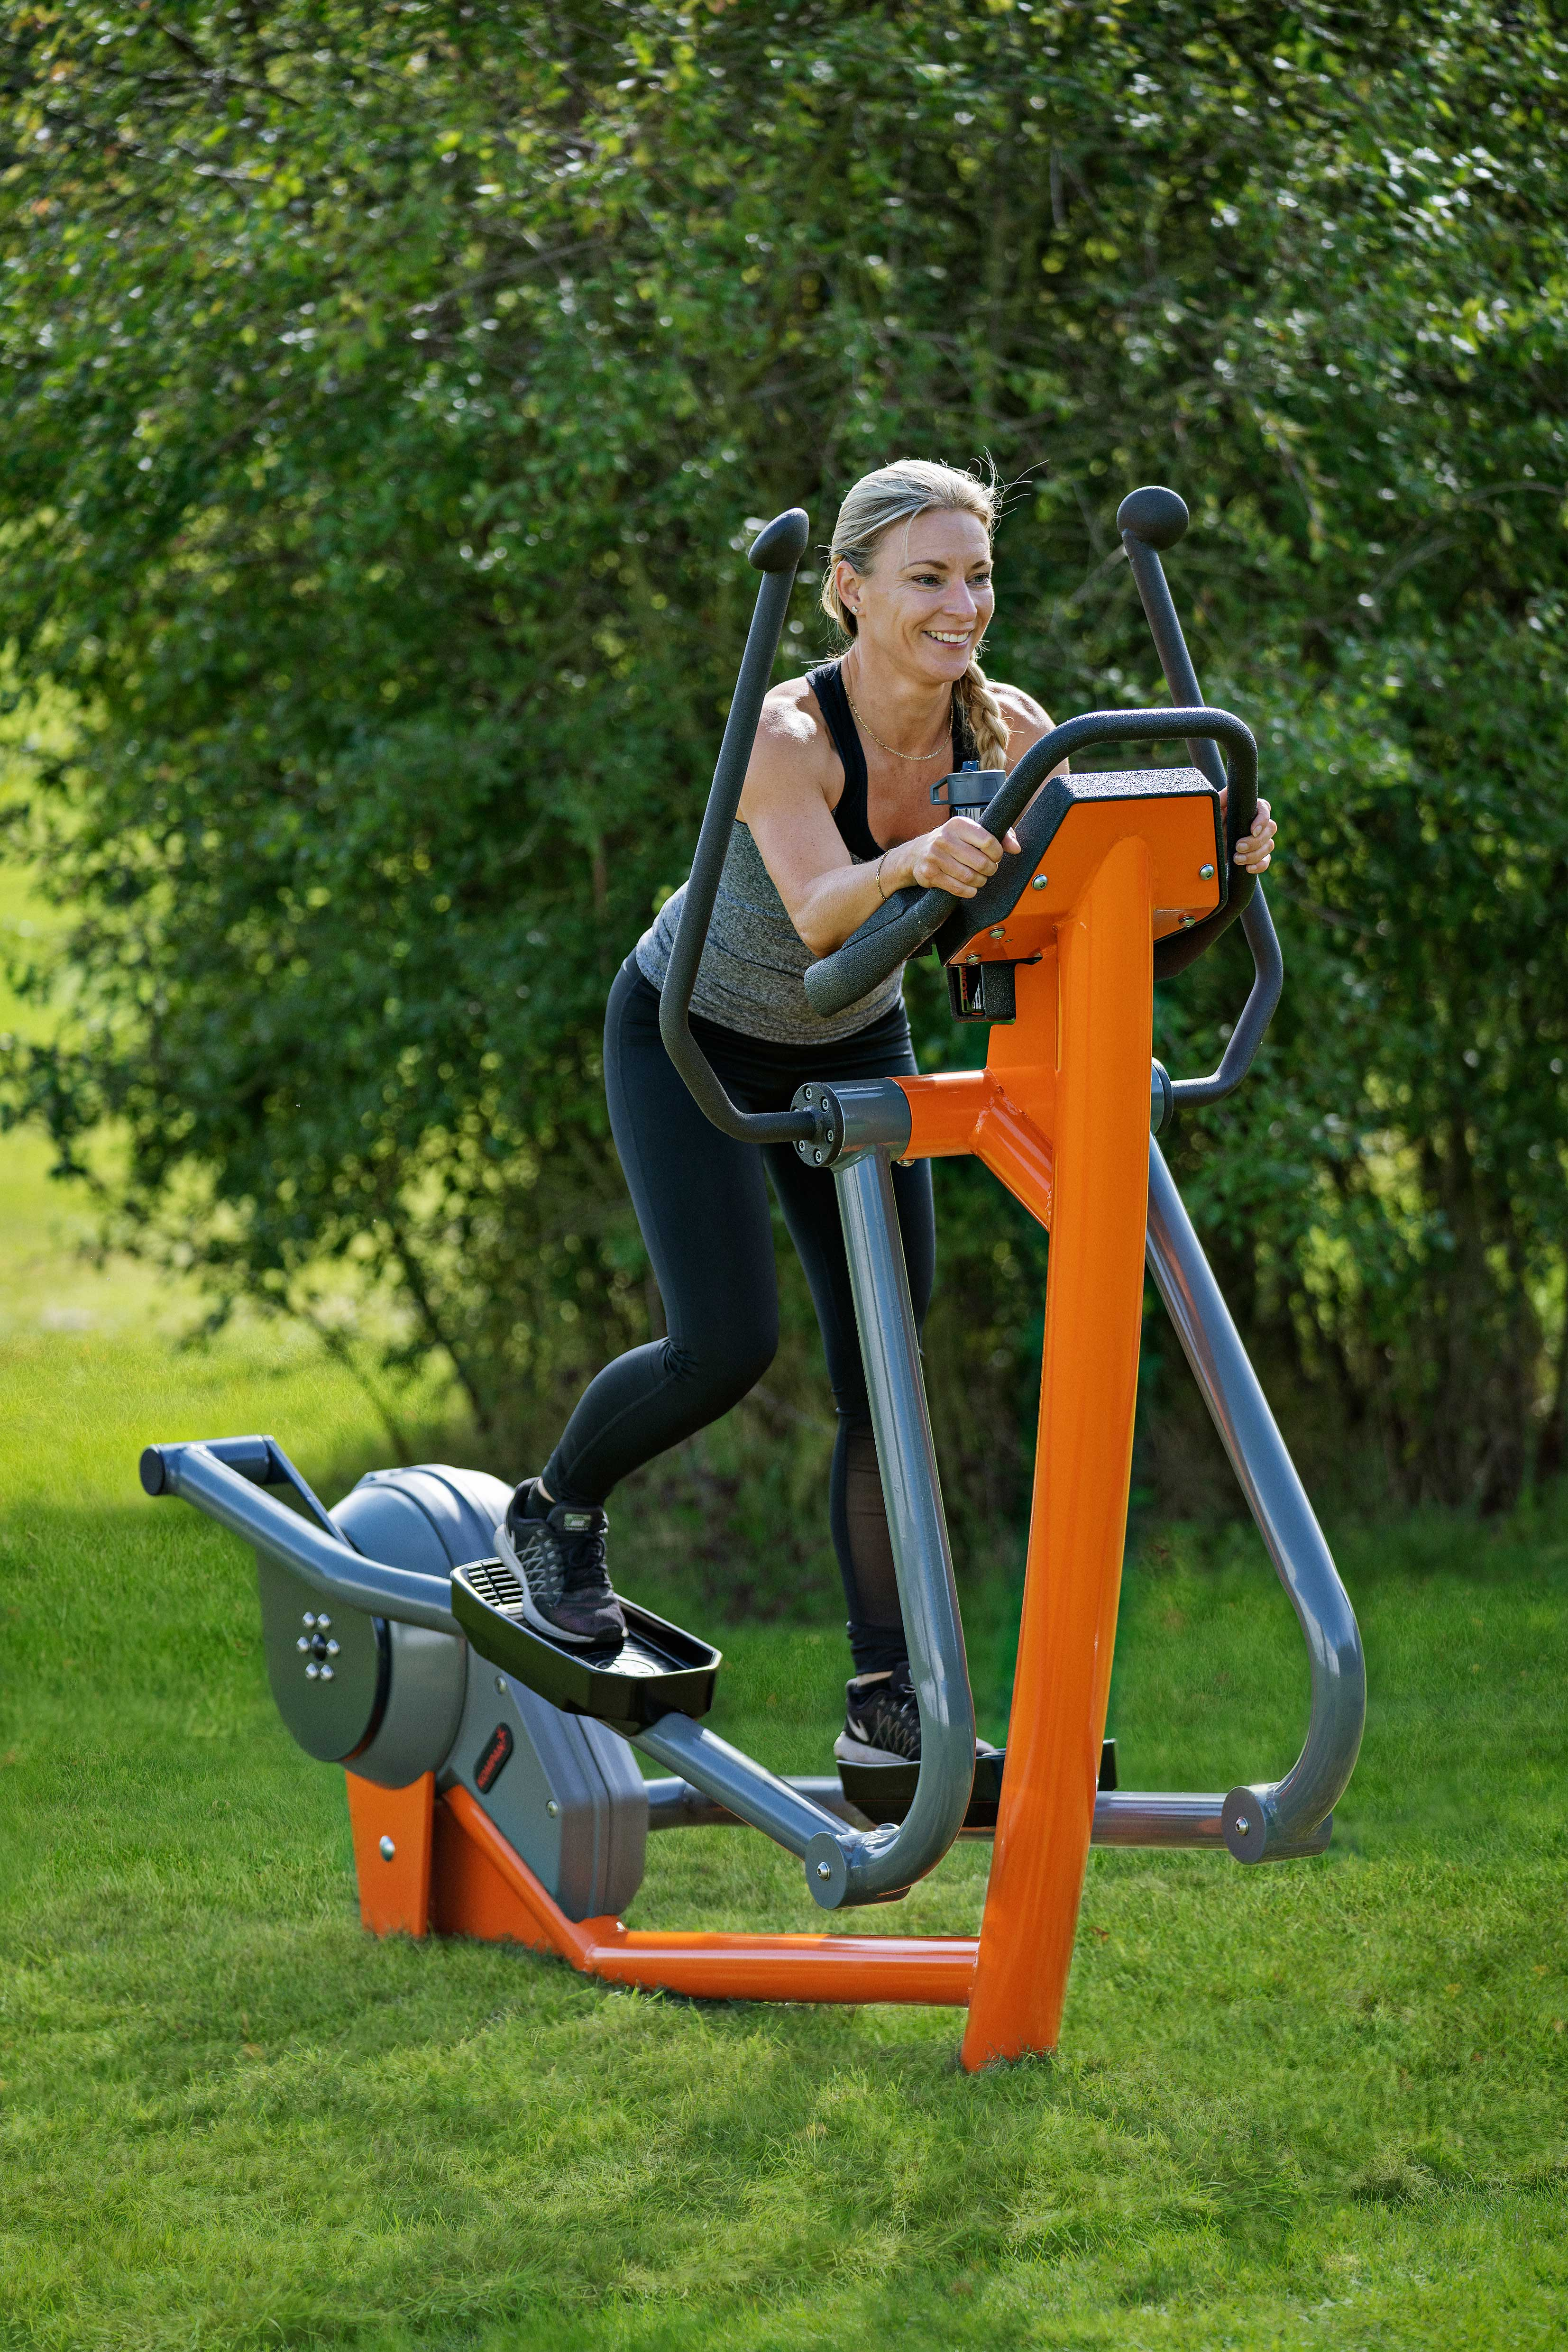 New state-of-the-art Cross Trainer taken outdoors